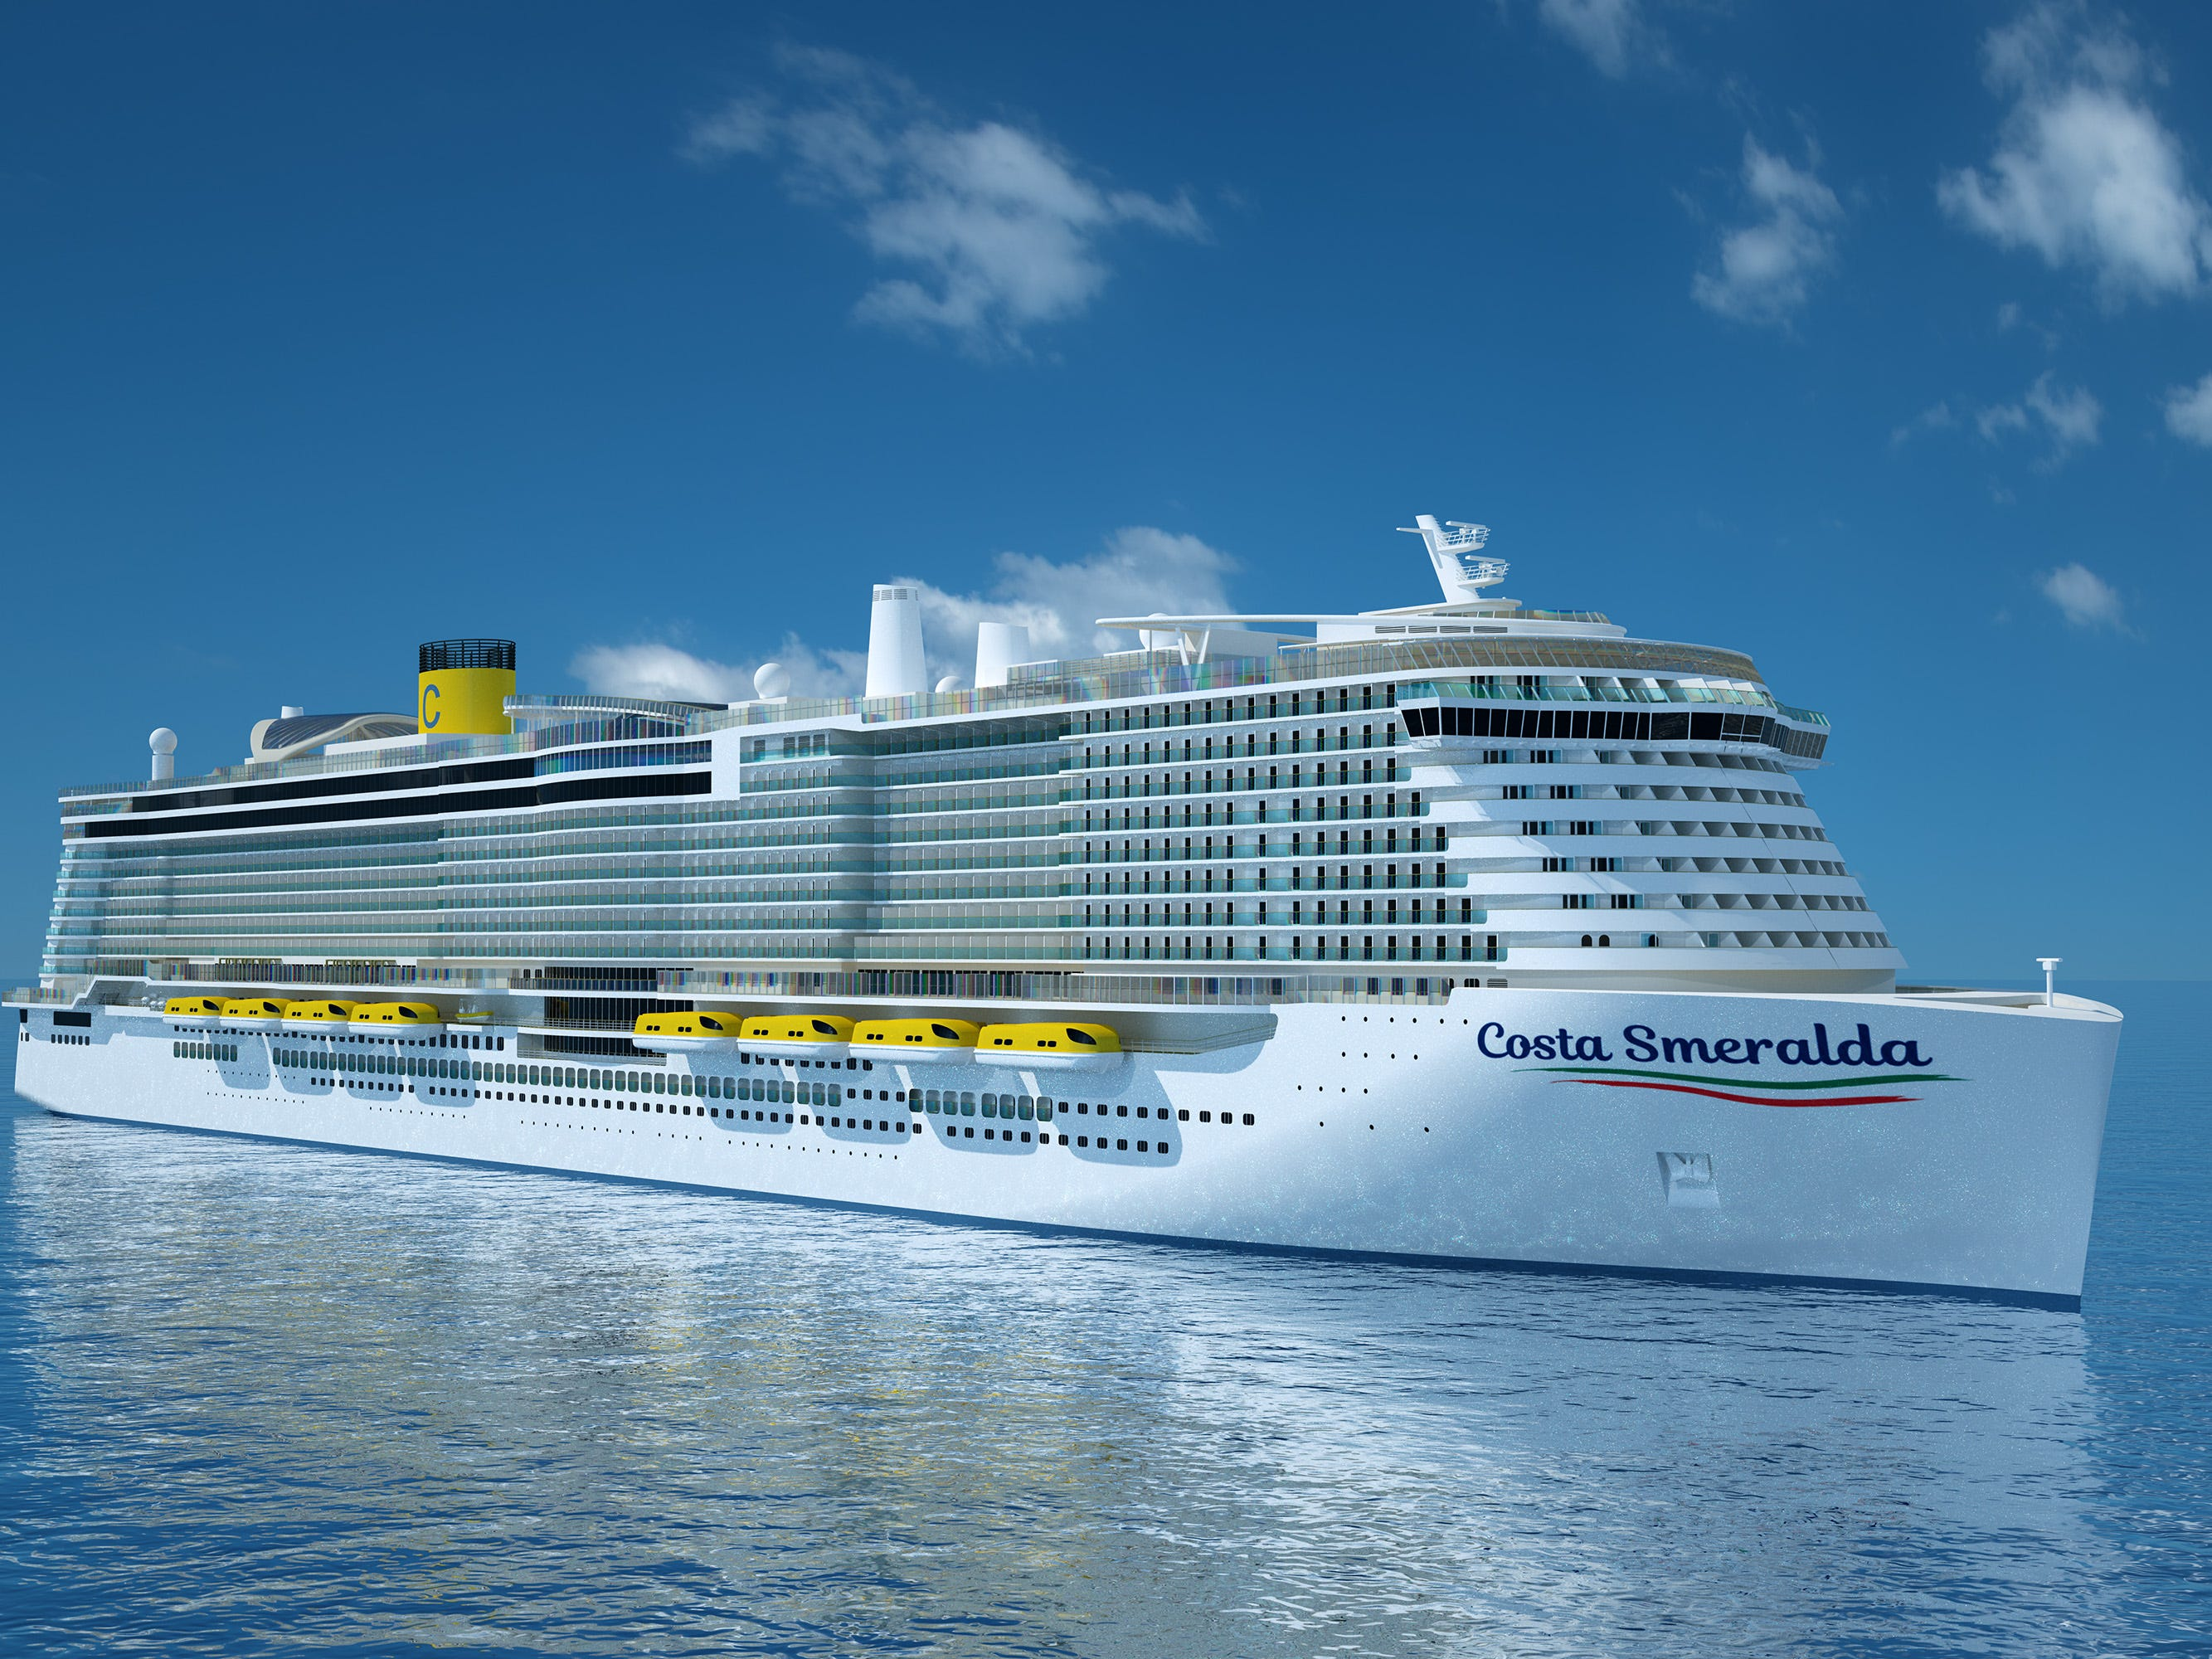 Costa Cruises in 2019 will unveil its biggest ship ever, Costa Smeralda.